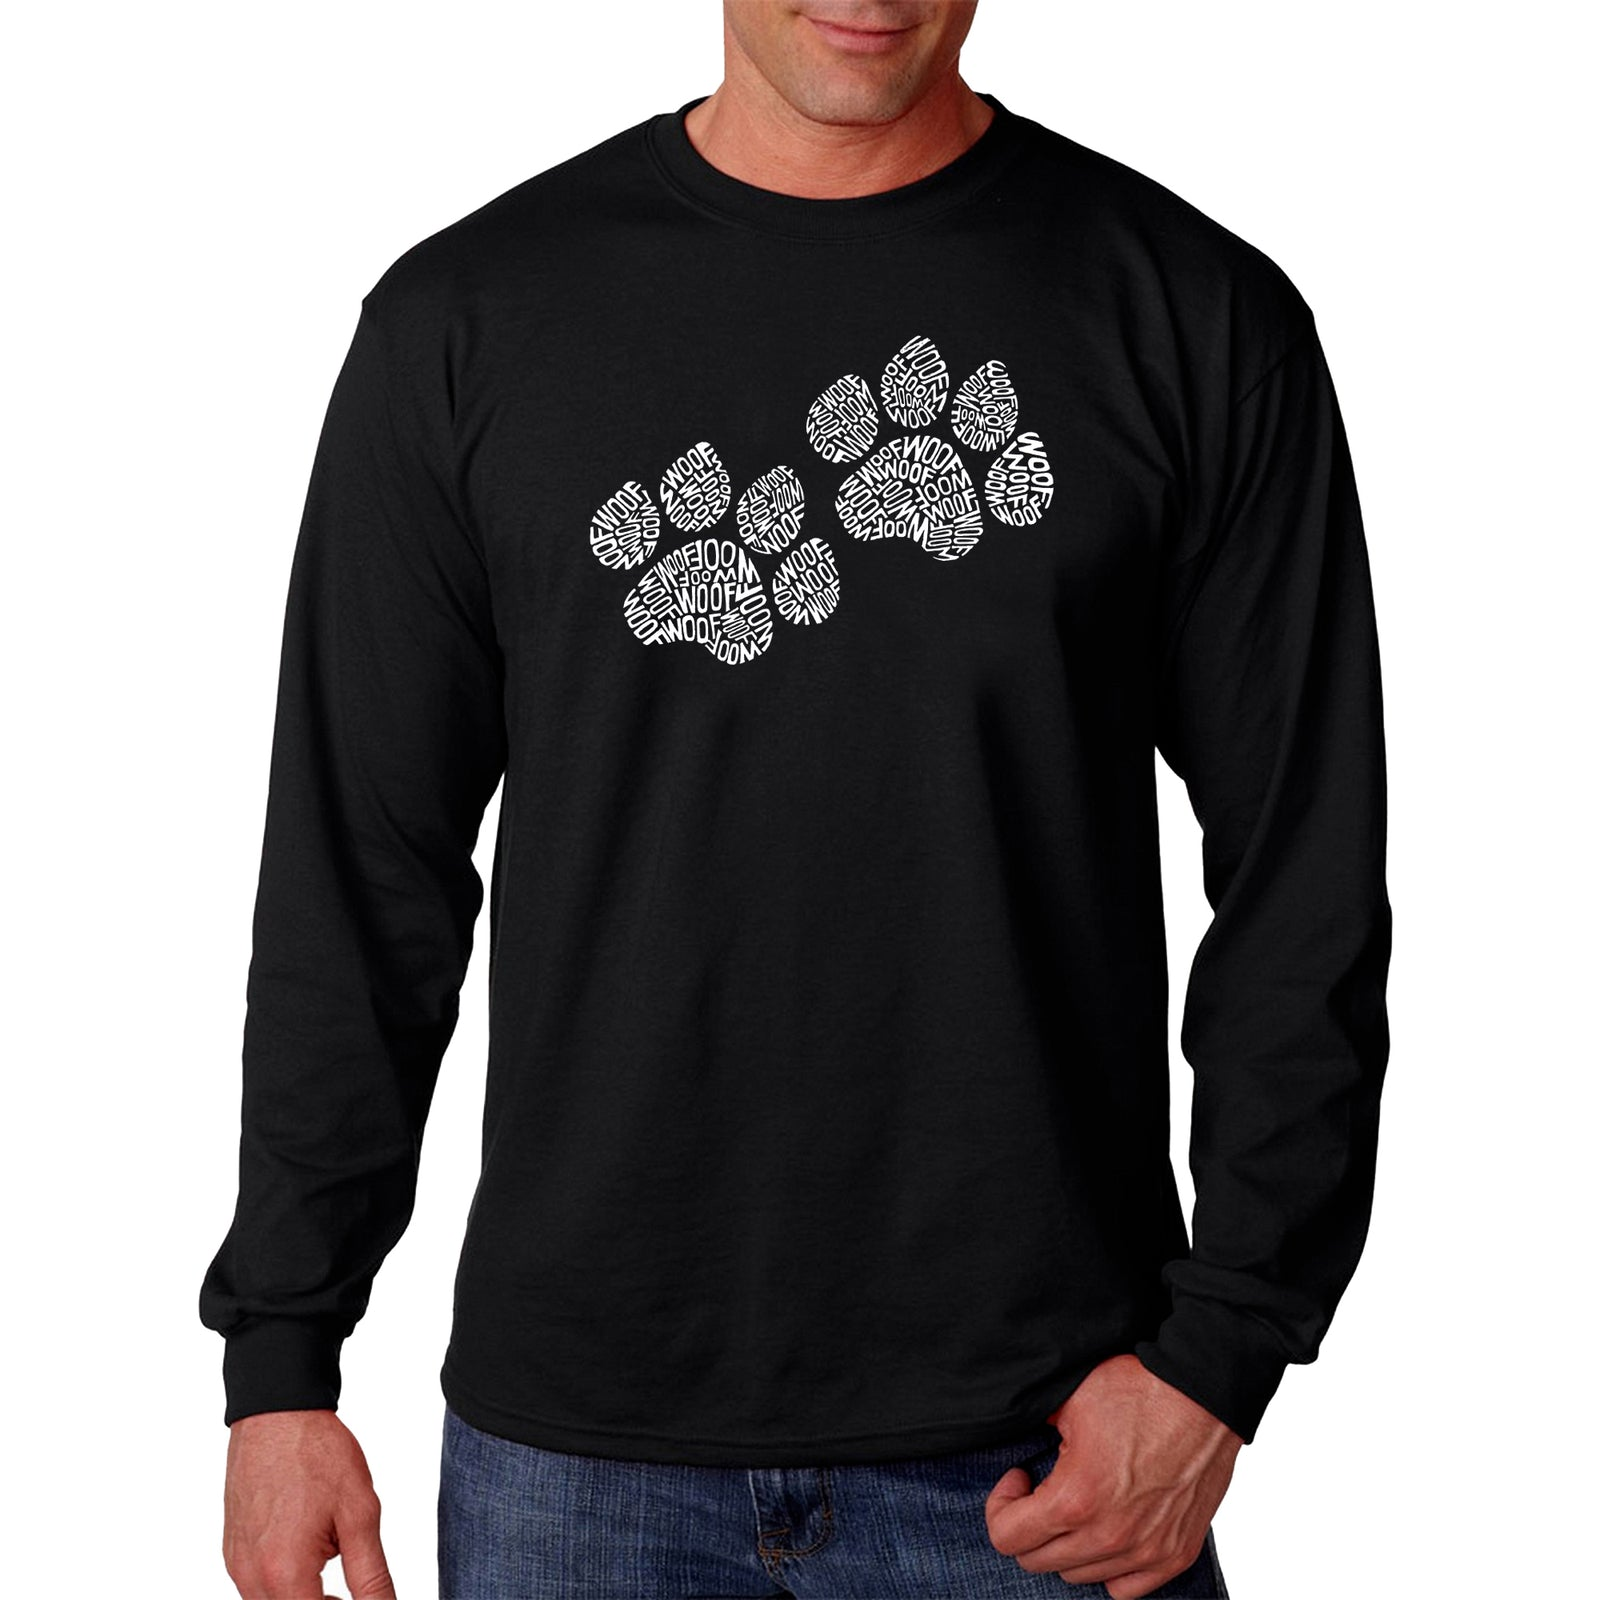 Los Angeles Pop Art Men's Long Sleeve T-shirt - Woof Paw Prints